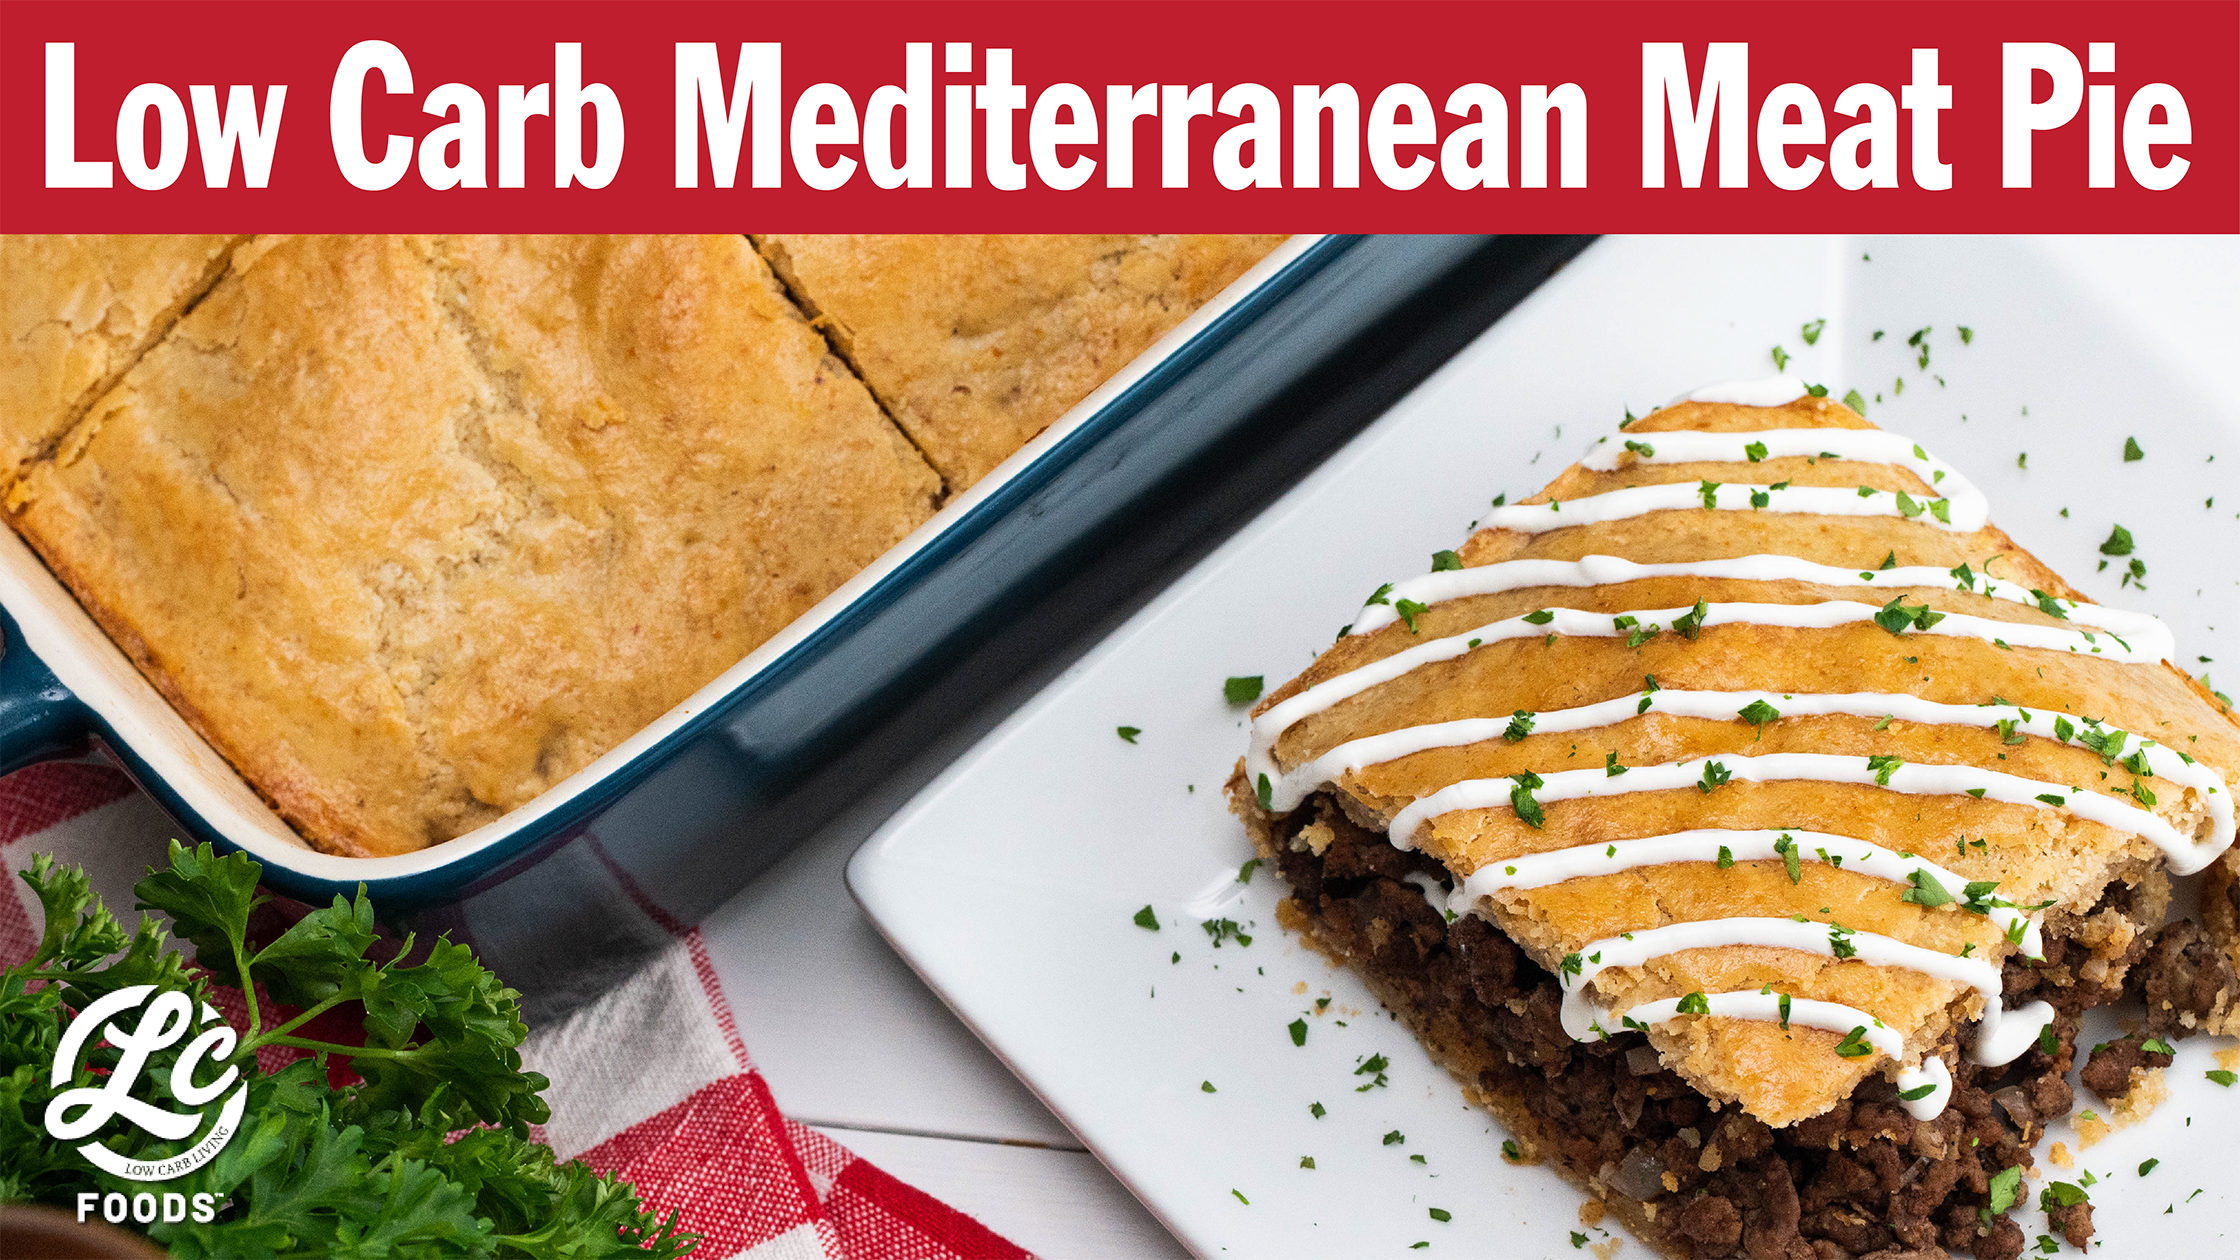 Thumbnail for Mediterranean Meat Pie with Low Carb Crust